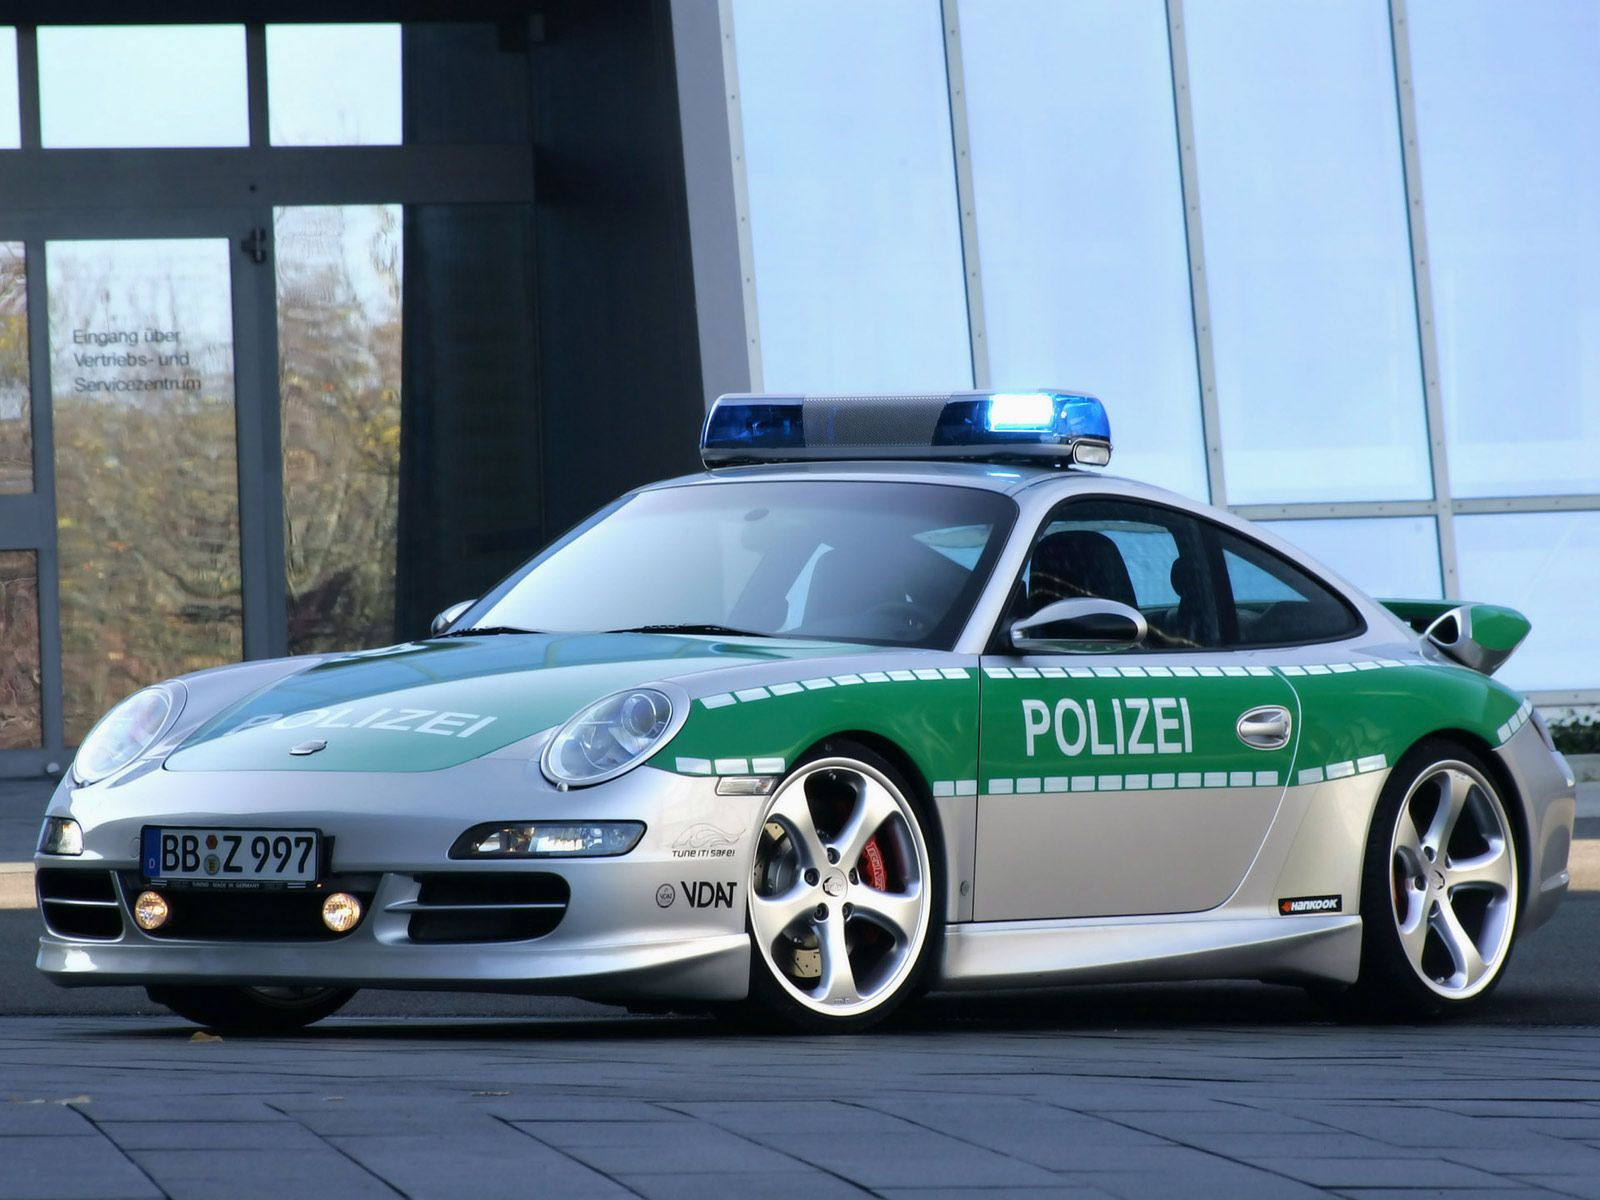 Merveilleux Porsche 911 Carrera Police Car *this Is What PLOD Drive In Germany*